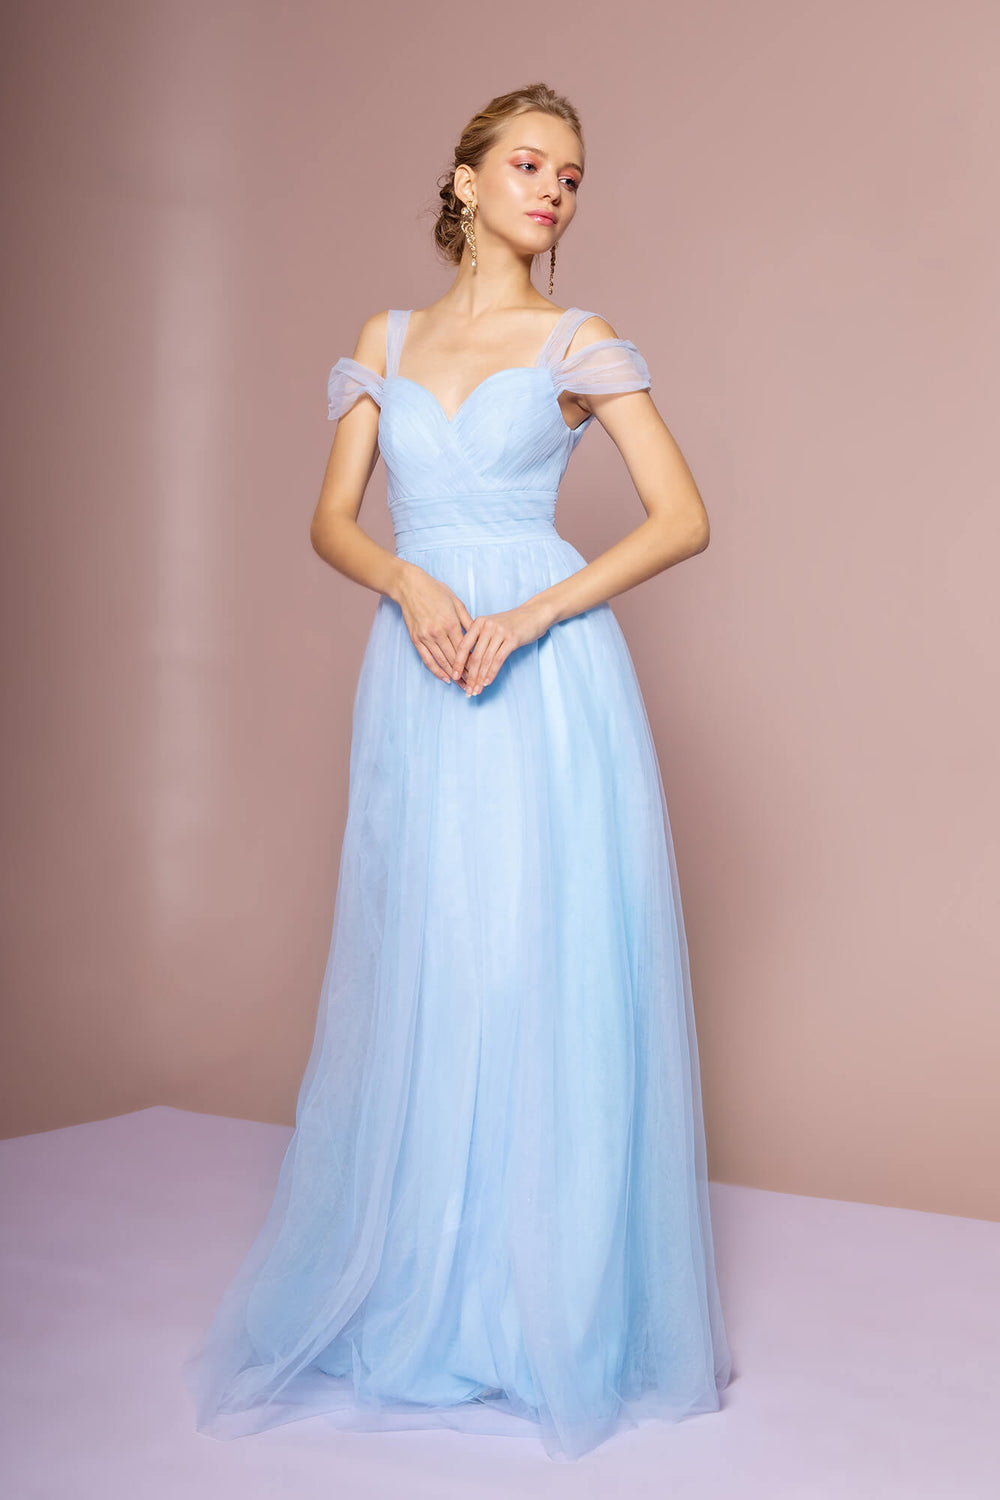 Sweethearted Formal Long Dress Bridesmaid - The Dress Outlet Baby Blue